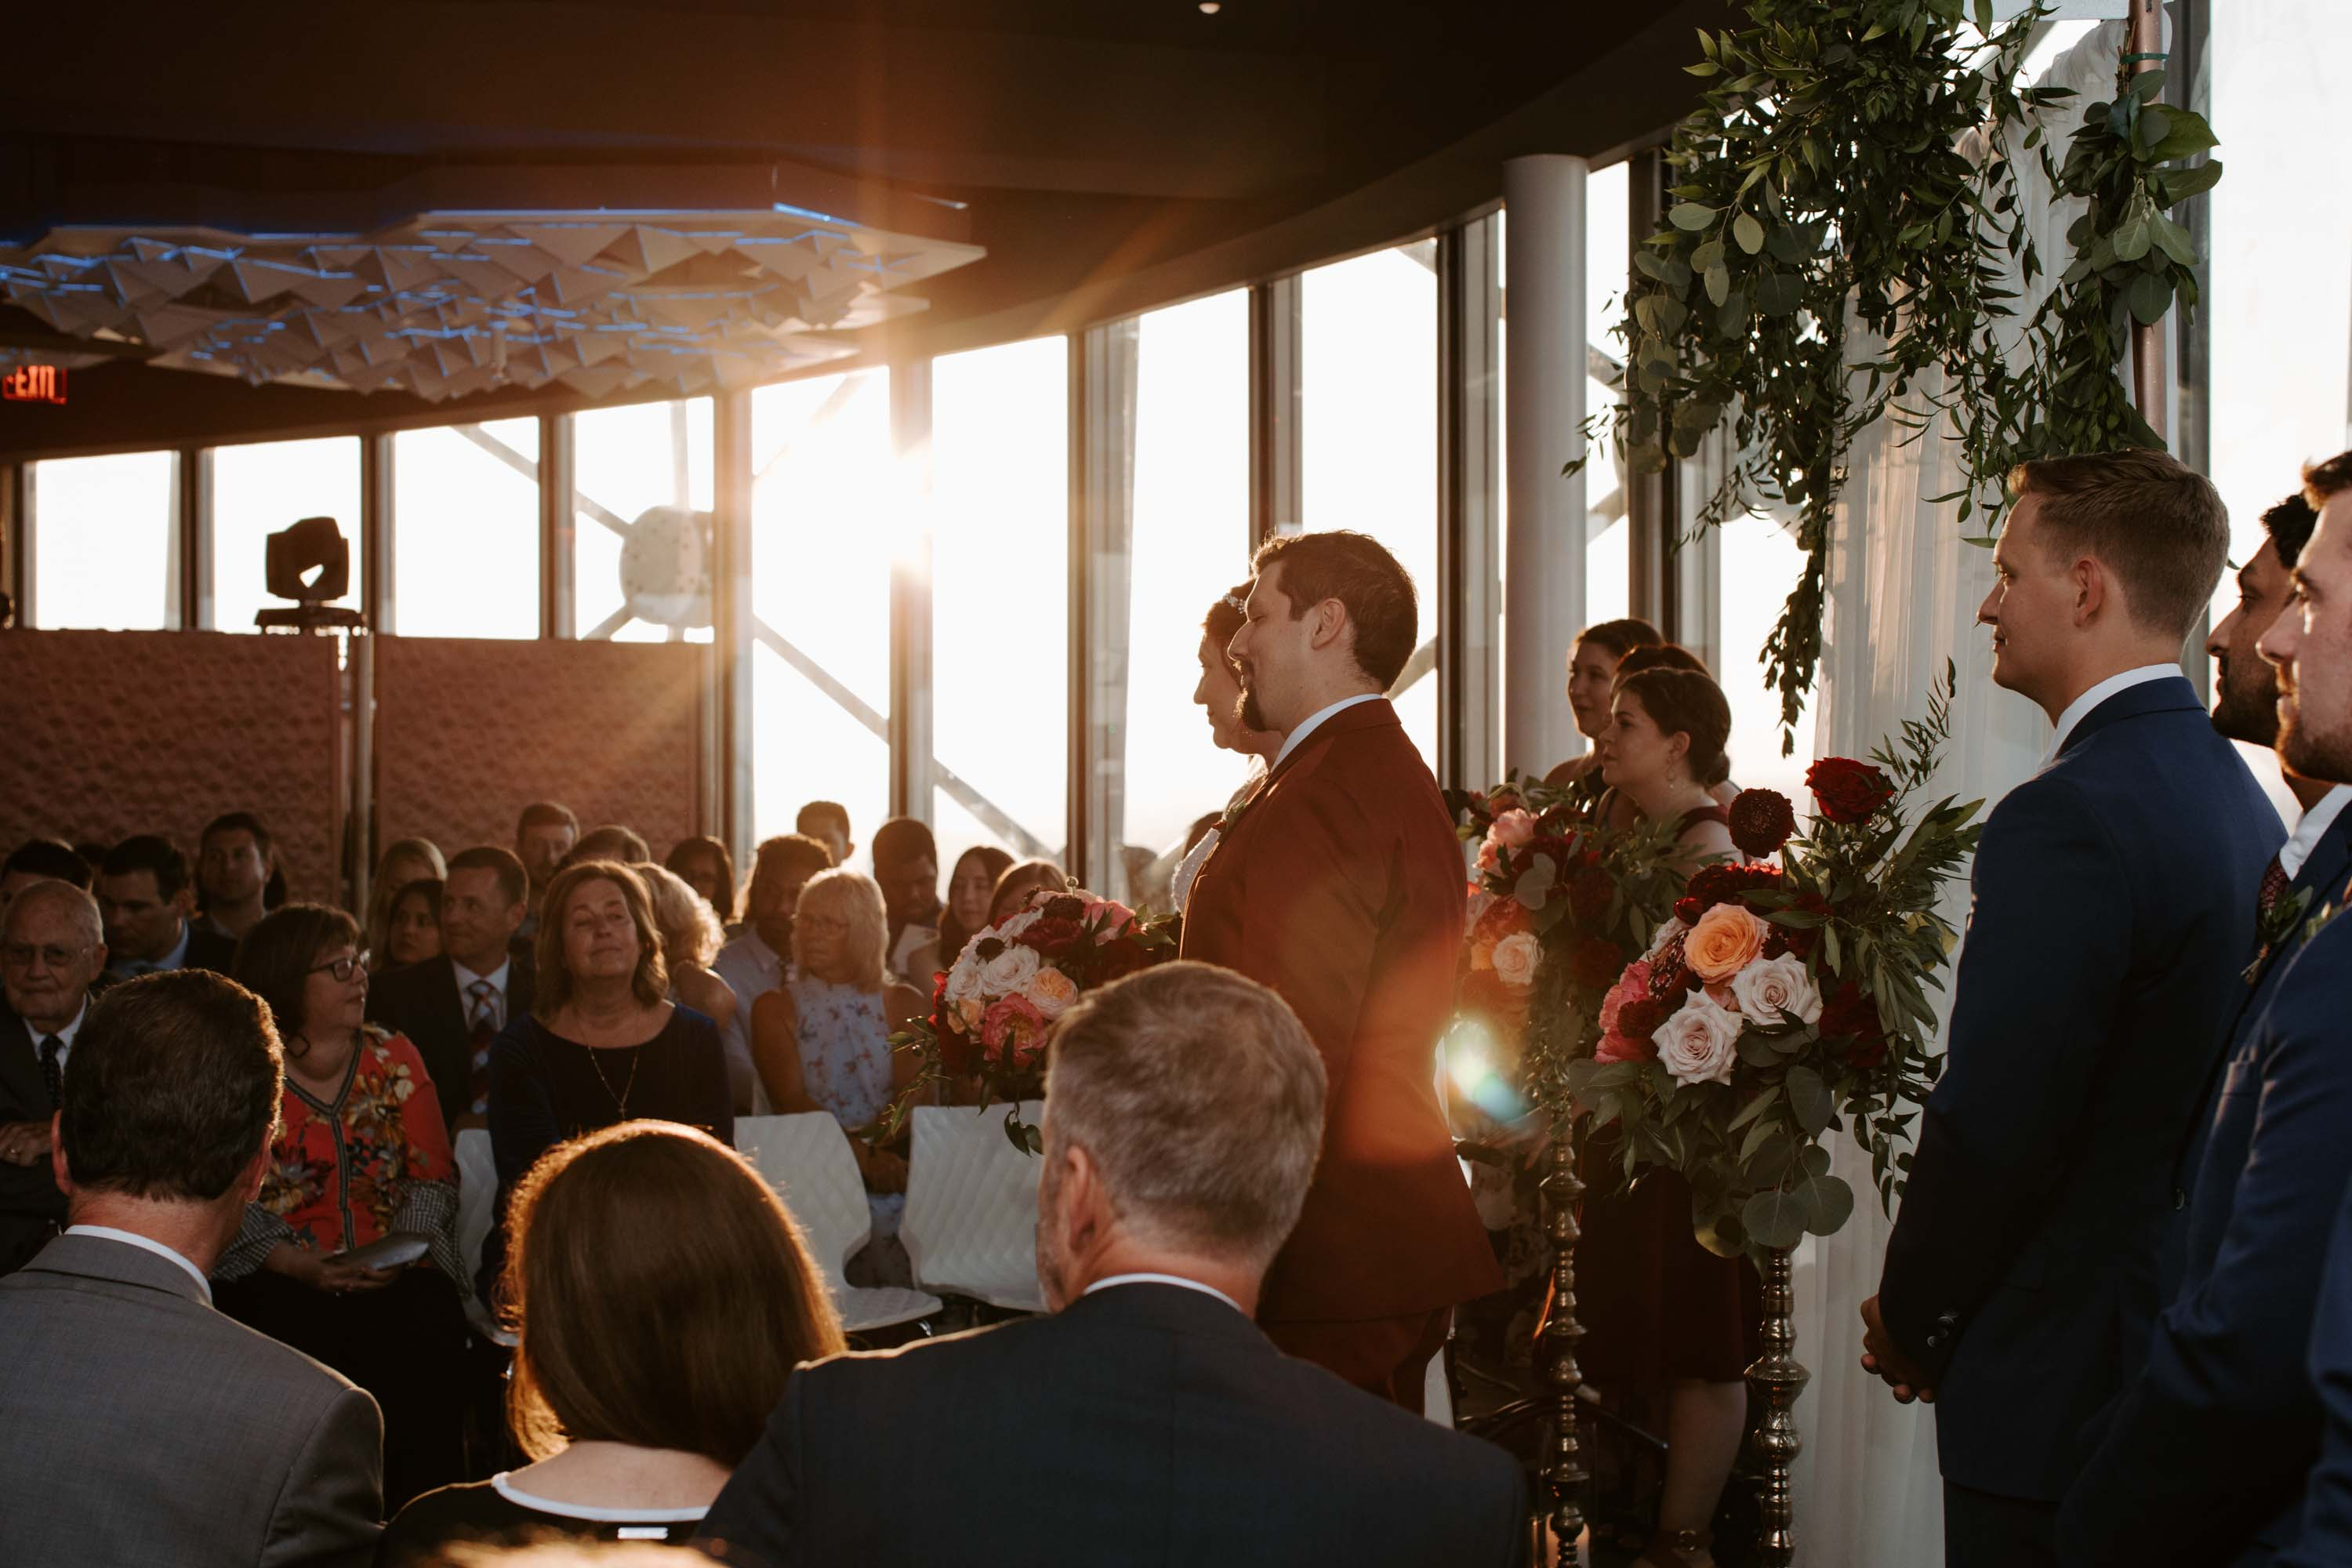 Wedding ceremony backlit beautiful lighting in reunion tower Dallas TX